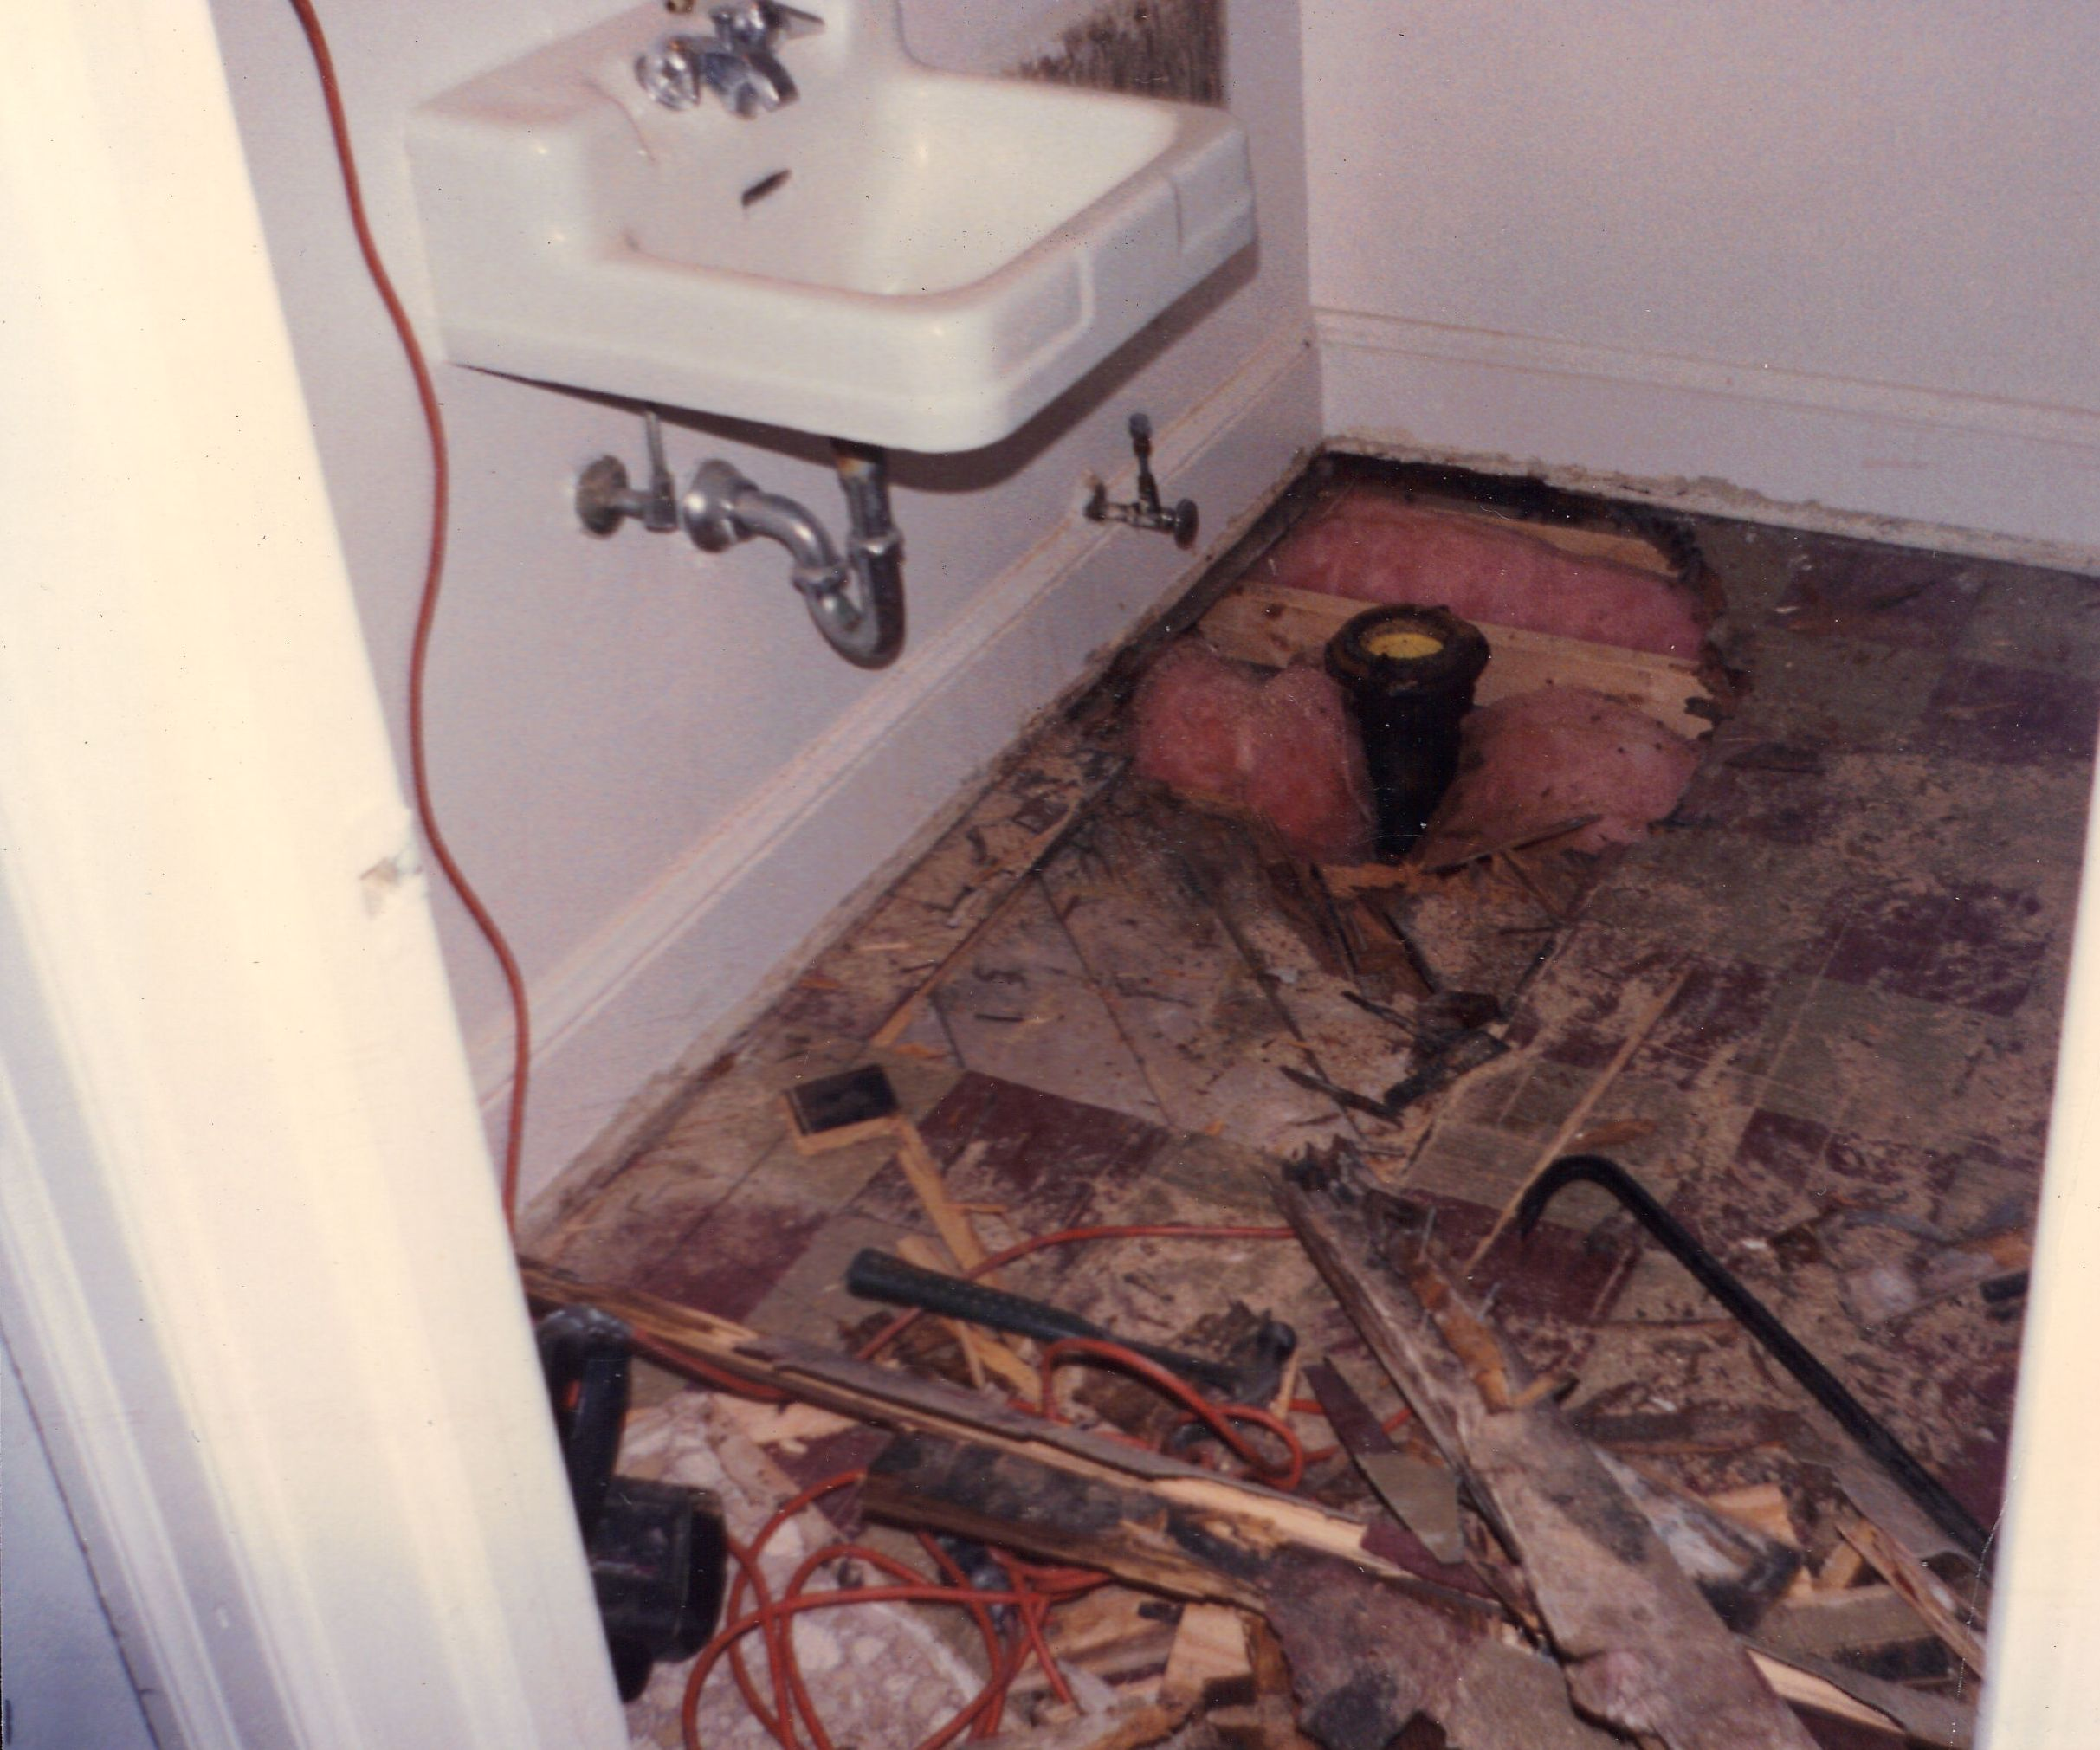 rotten bathroom floor rotted bathroom floor kattermann s handyman 14251